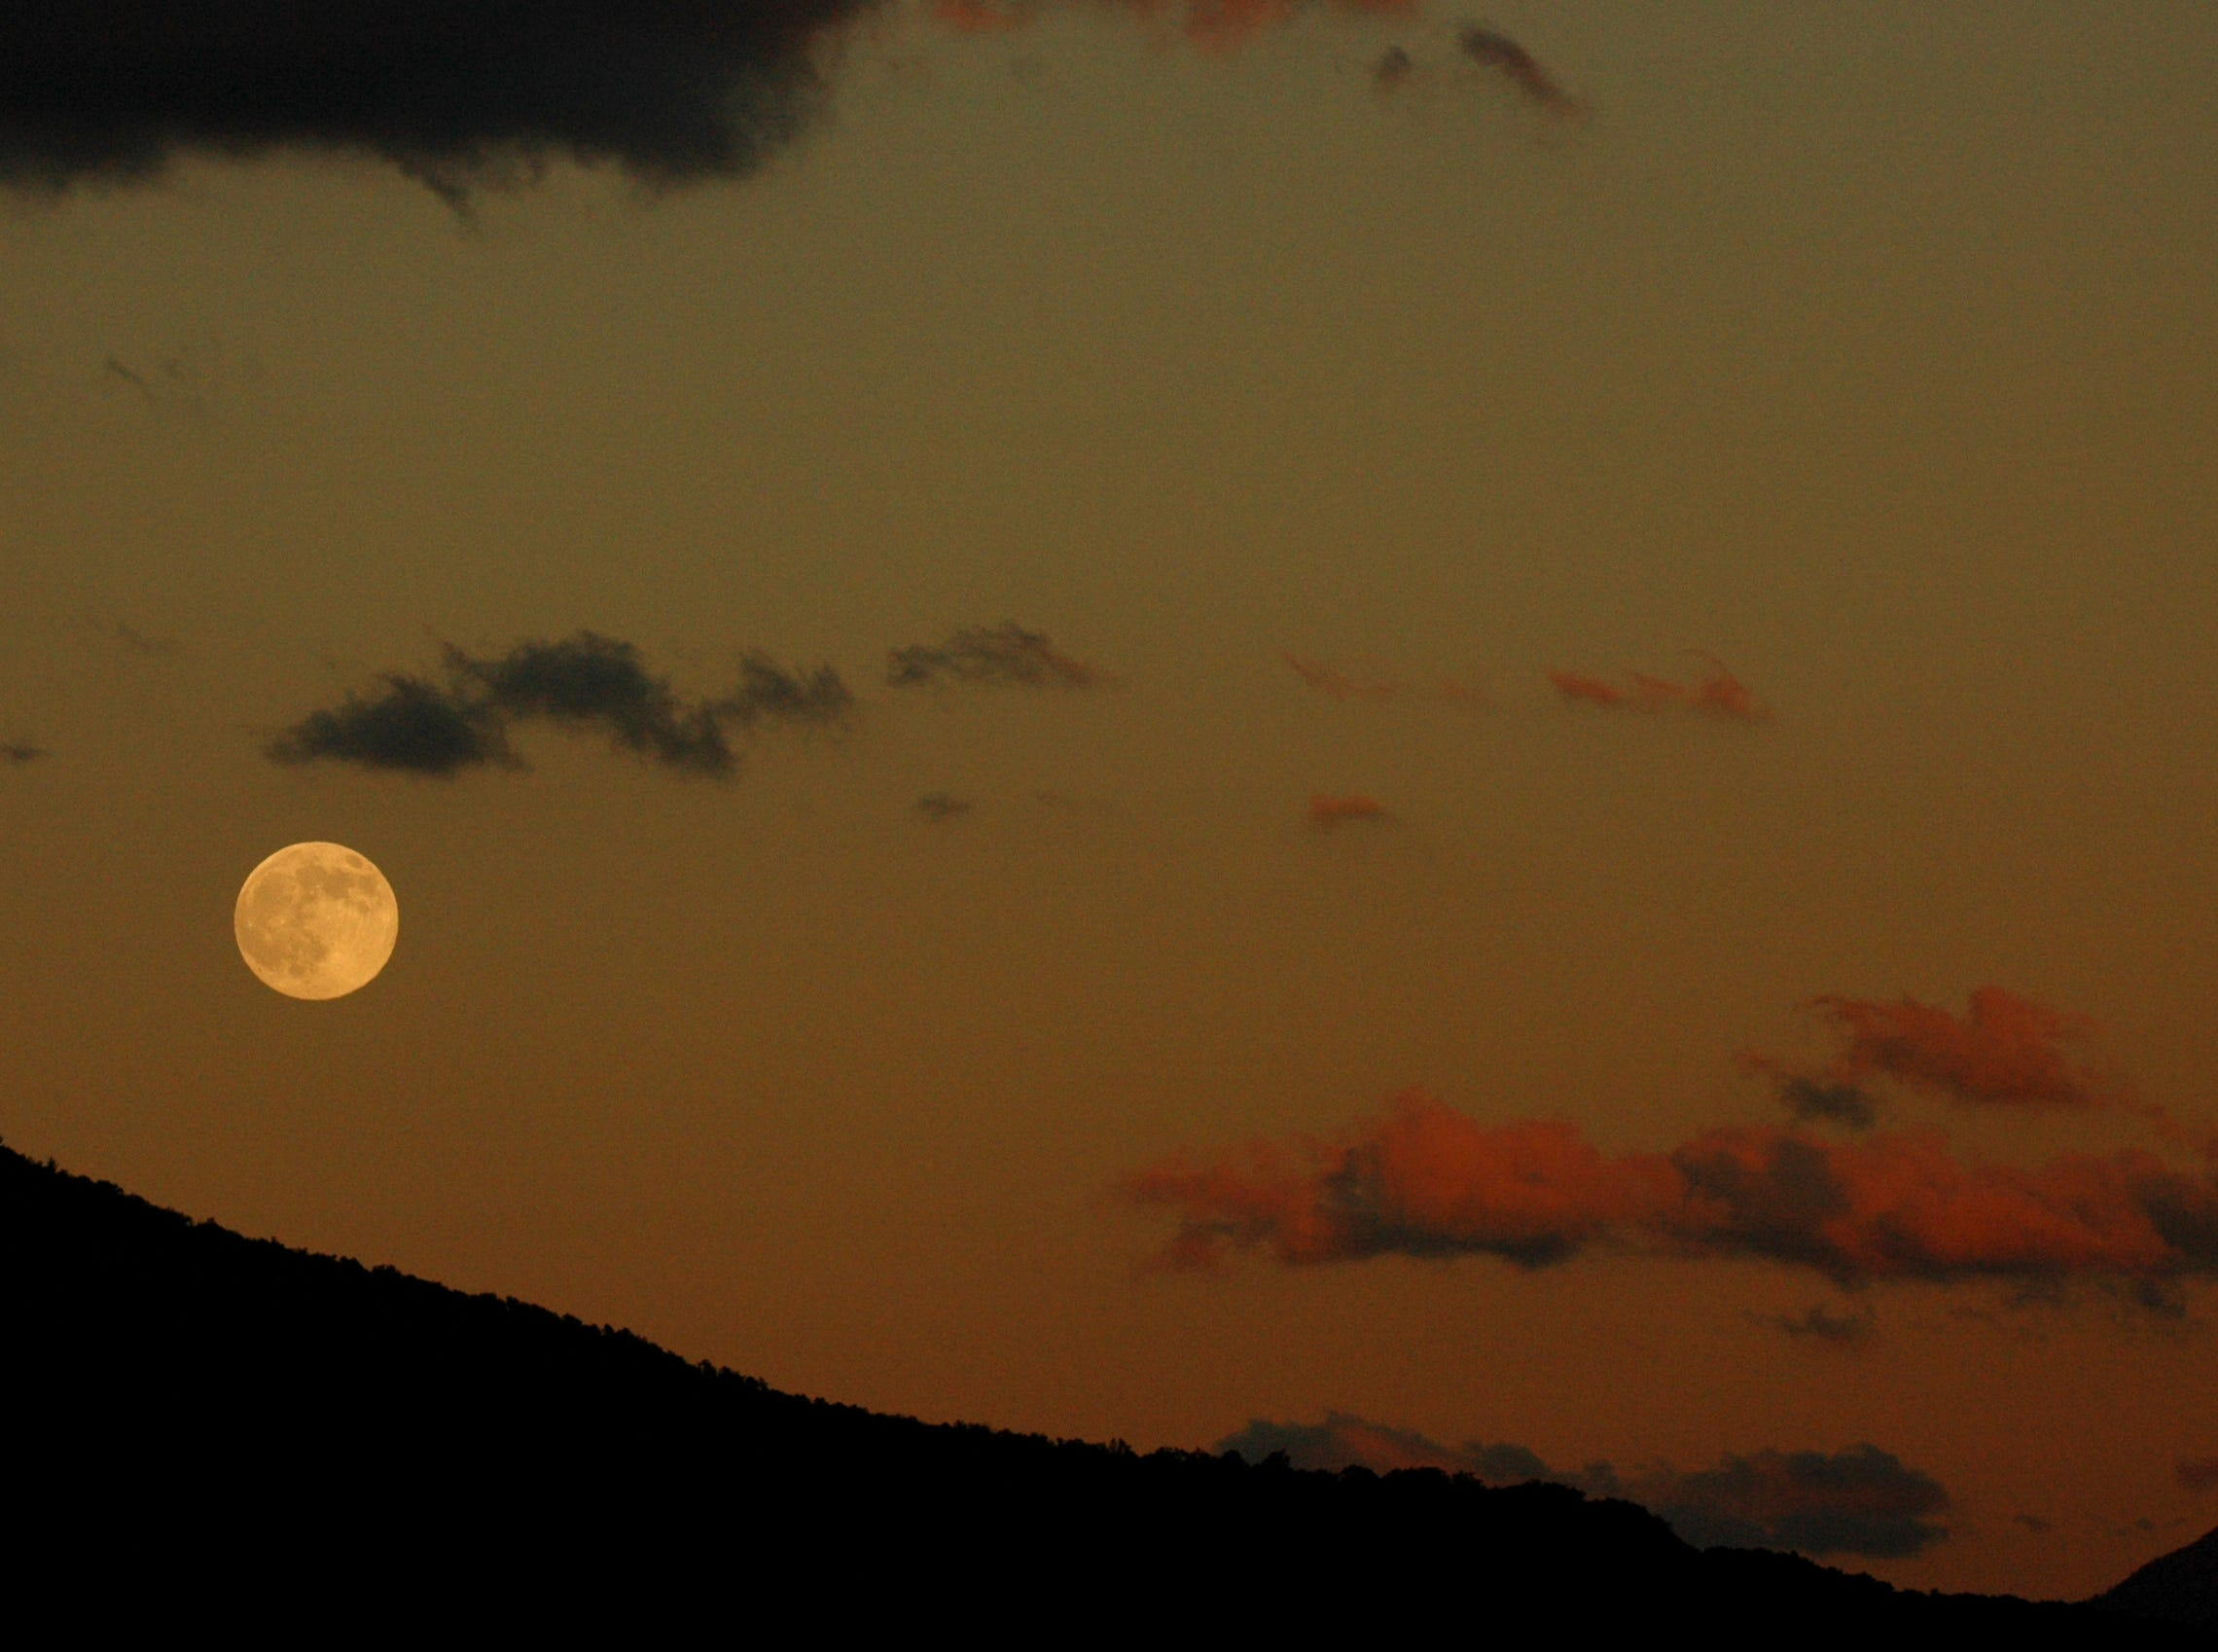 """A full moon, also known in October as the Full Hunter's Moon rises over Cades Cove on last week in the Great Smoky Mountains National Park. According to Stardate.org, a moon appearing larger on the horizon is an illusion and is not any further from Earth than when the moon is seen overhea in the night sky. """"When the Moon is nestled along the horizon we see it surrounded by a foreground of familiar Earth-bound objects. In comparison with these features, the bright disk of the full Moon appears quite large, and relative to our normal sense of the Moon's size, much bigger than we would expect."""" States the website."""